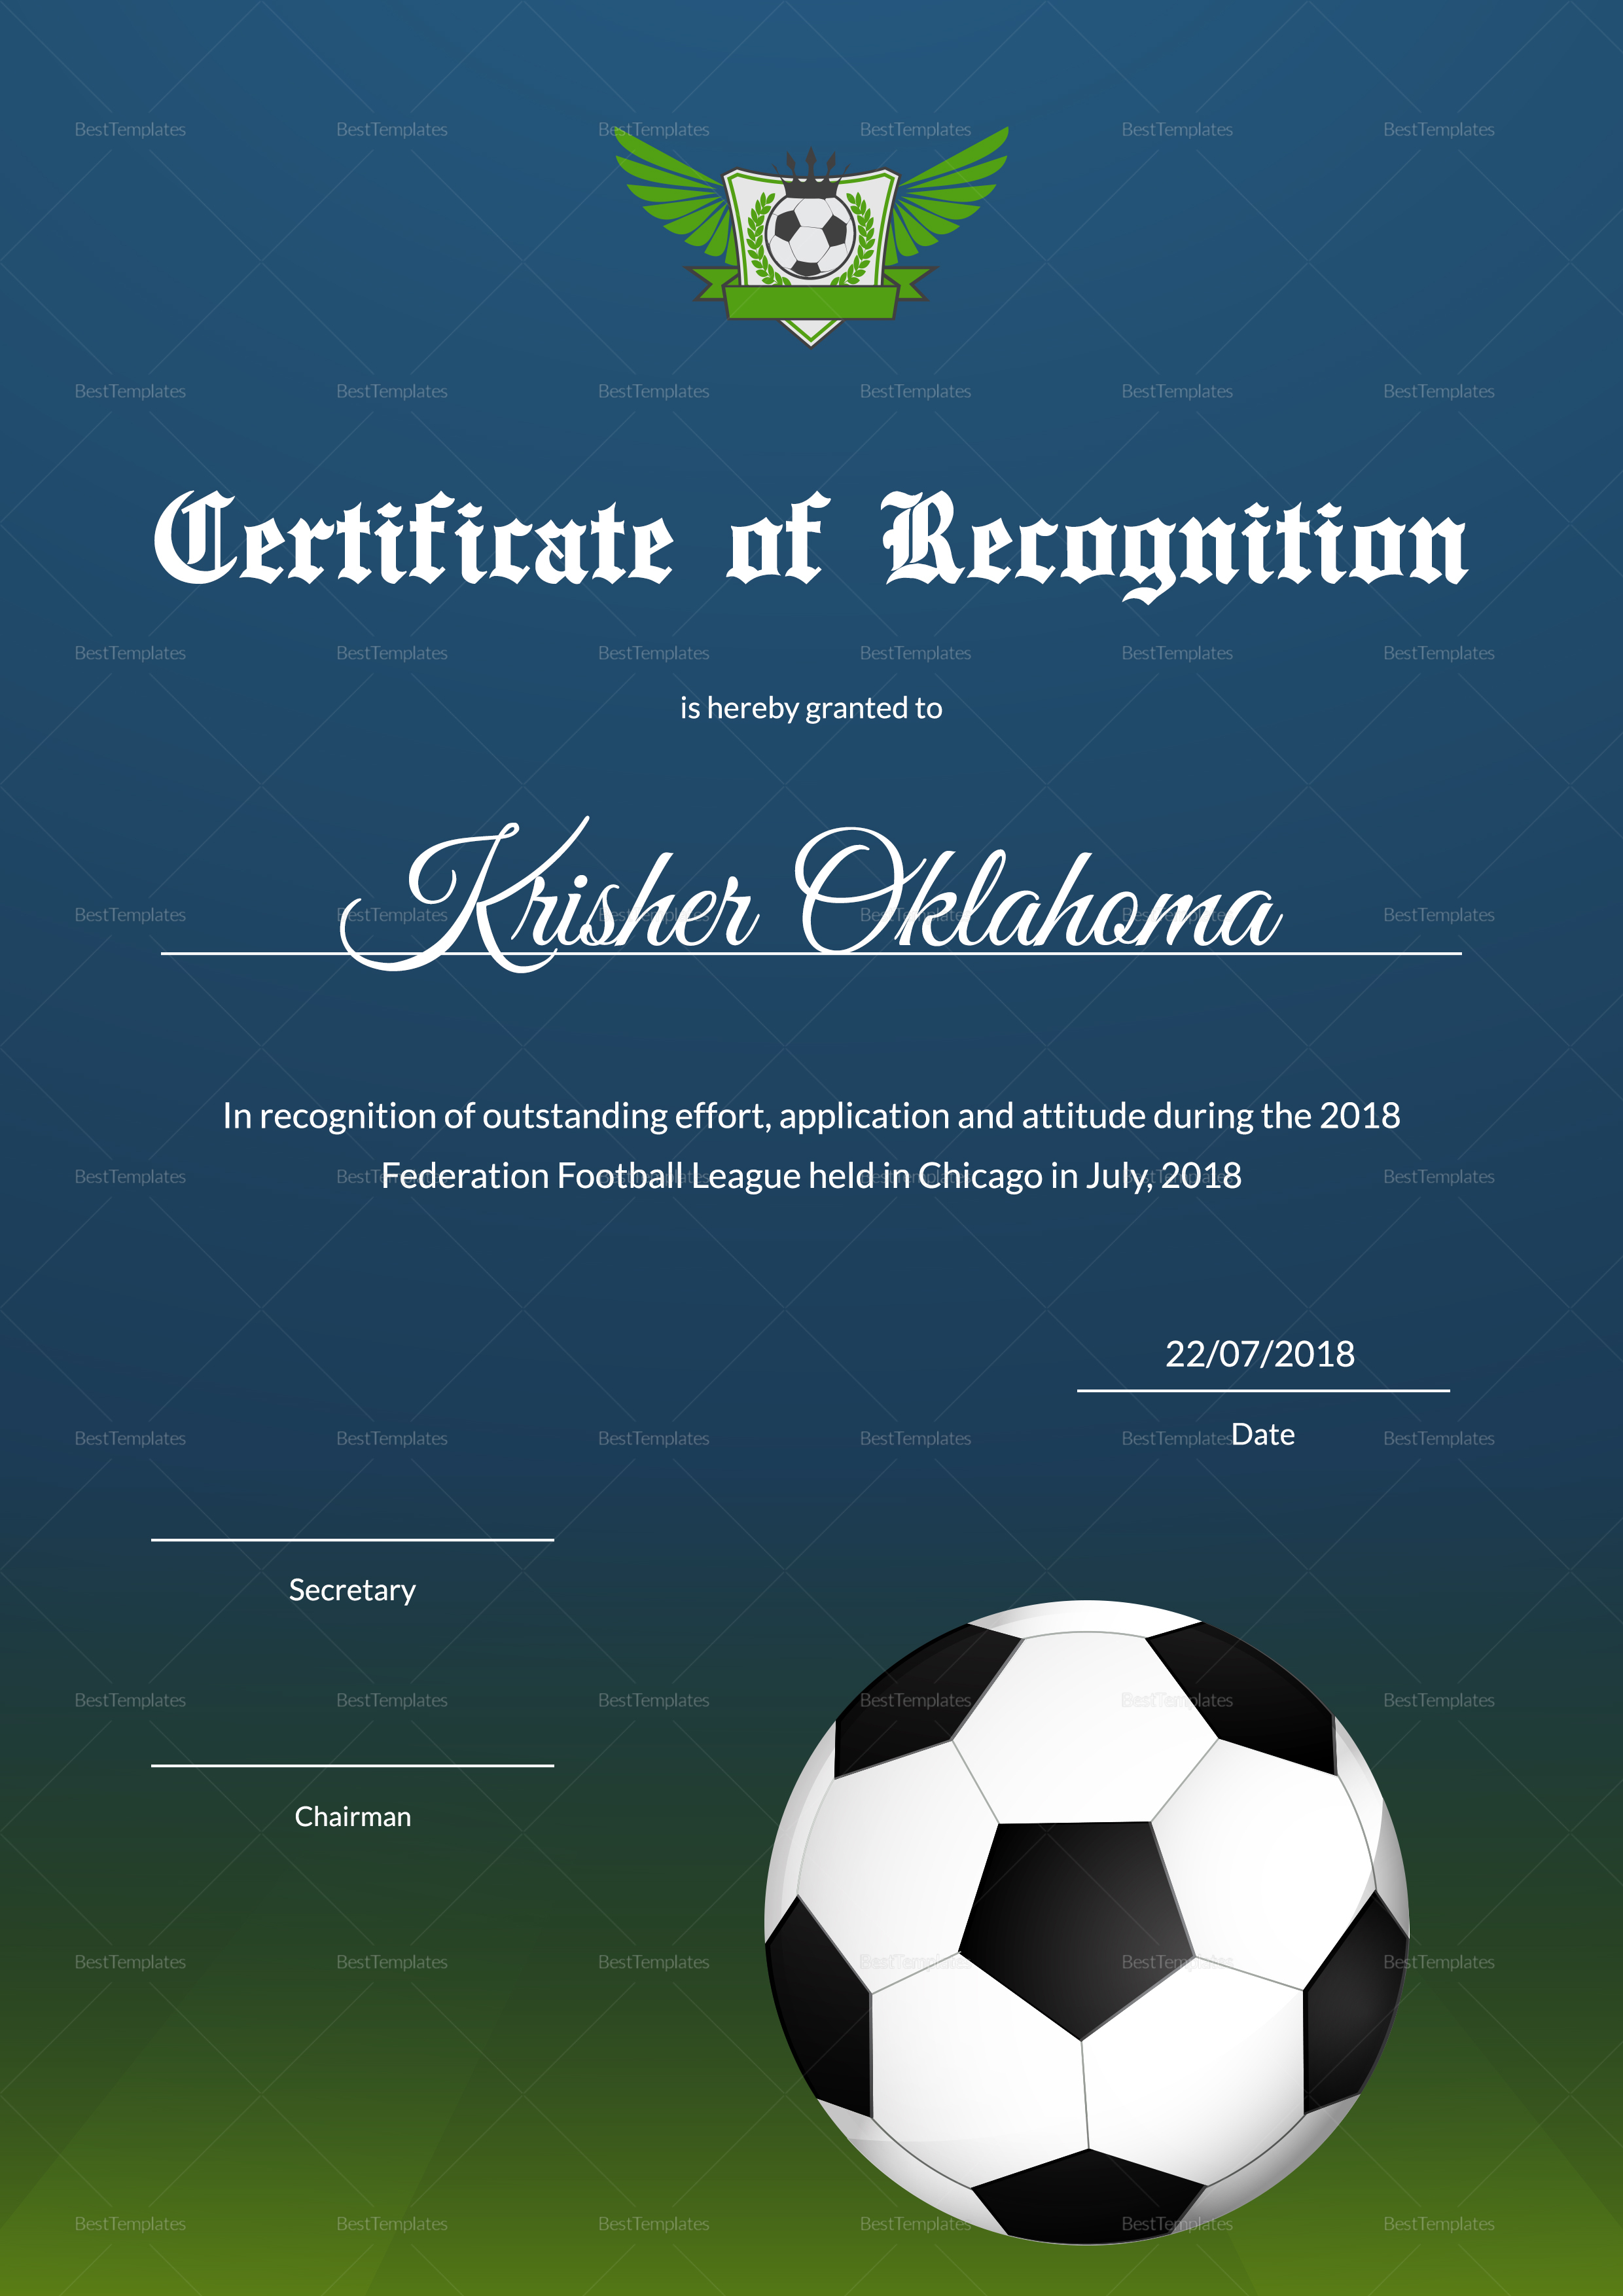 Federation Football League Recognition Certificate Design